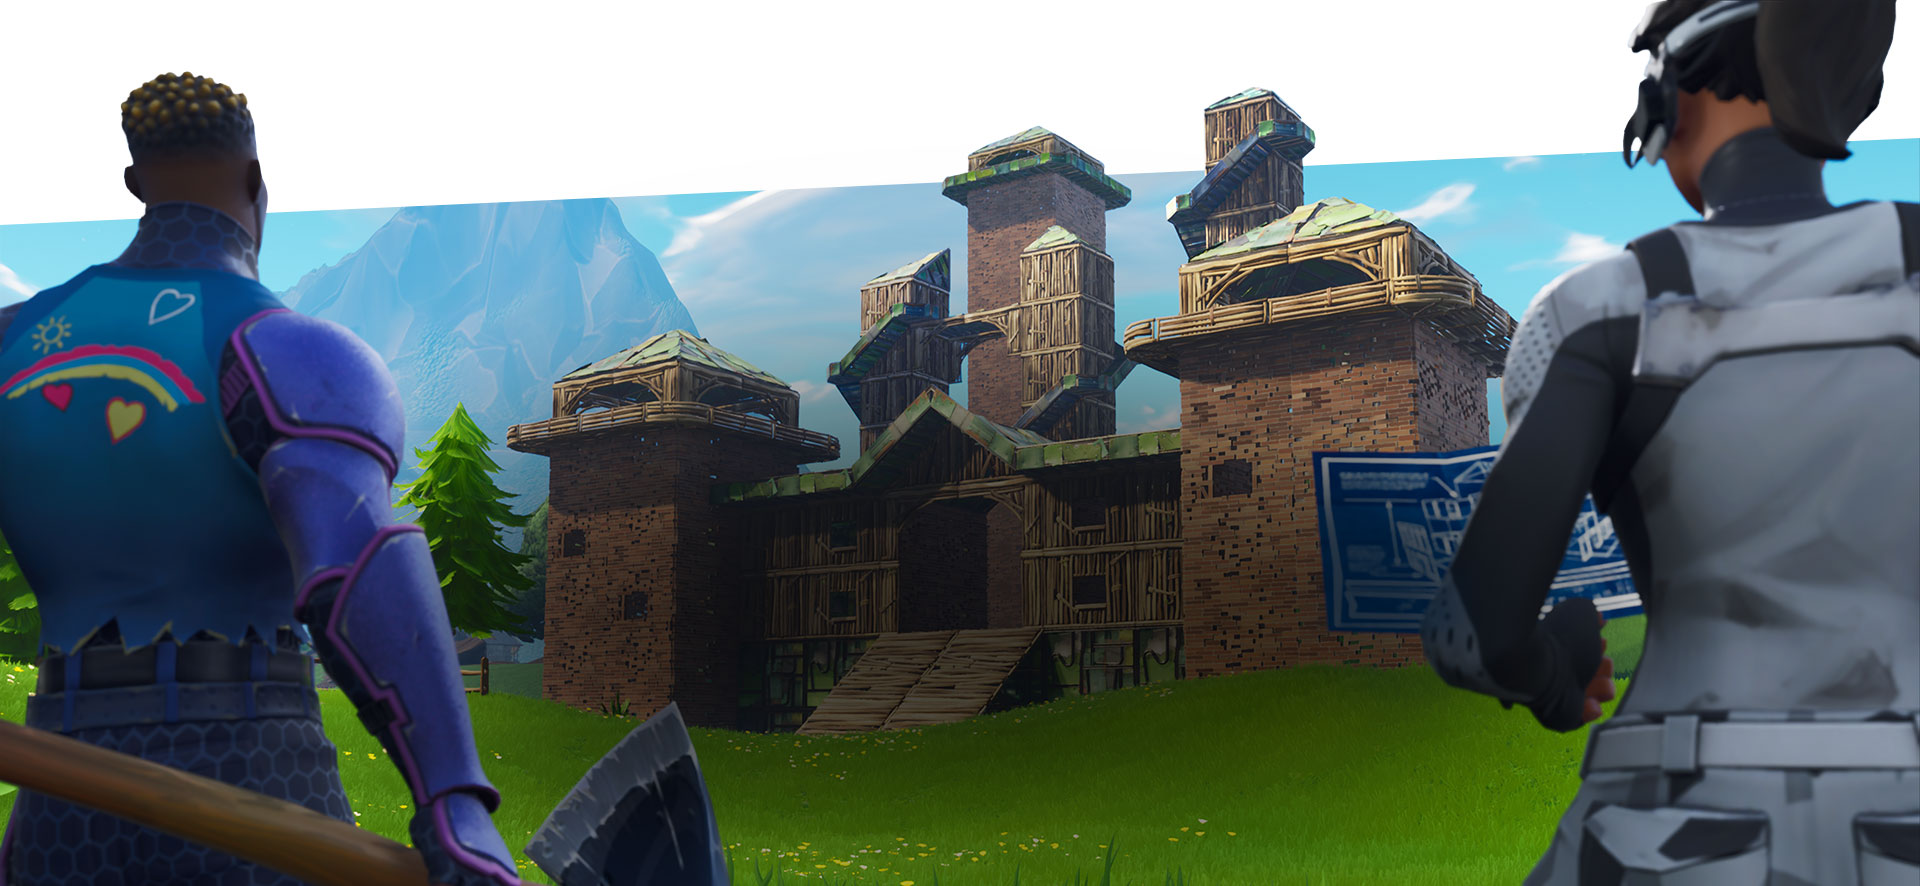 Get your battle on, 2 Fortnite characters reviewing blue prints of their new fort